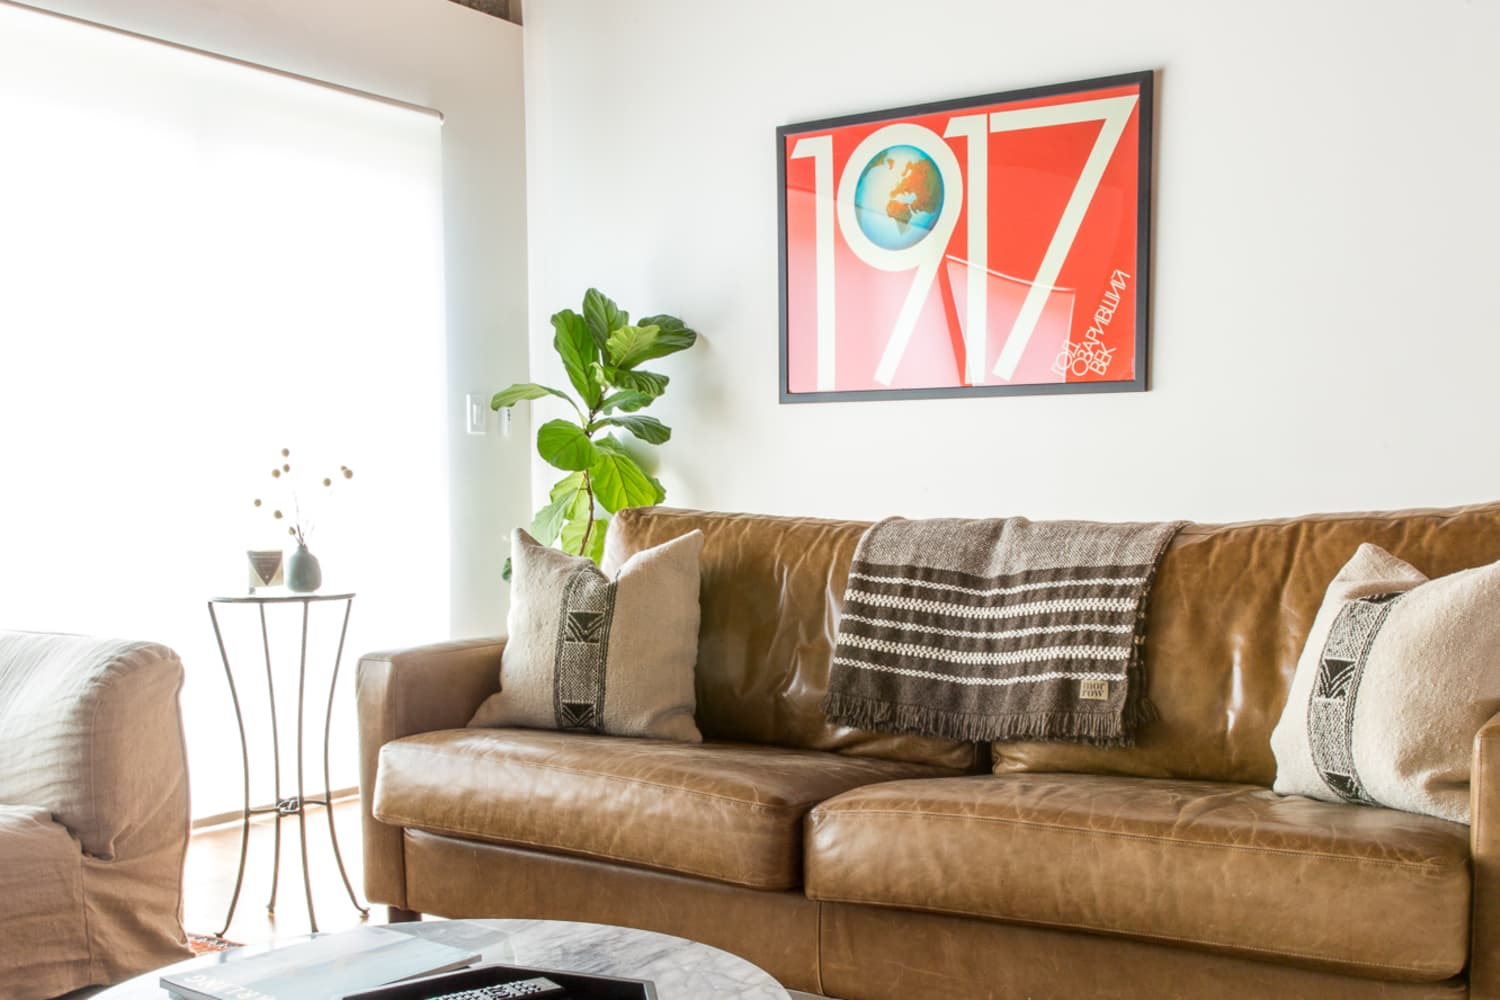 America's Most-Searched Home Decor Item is a Cozy Staple